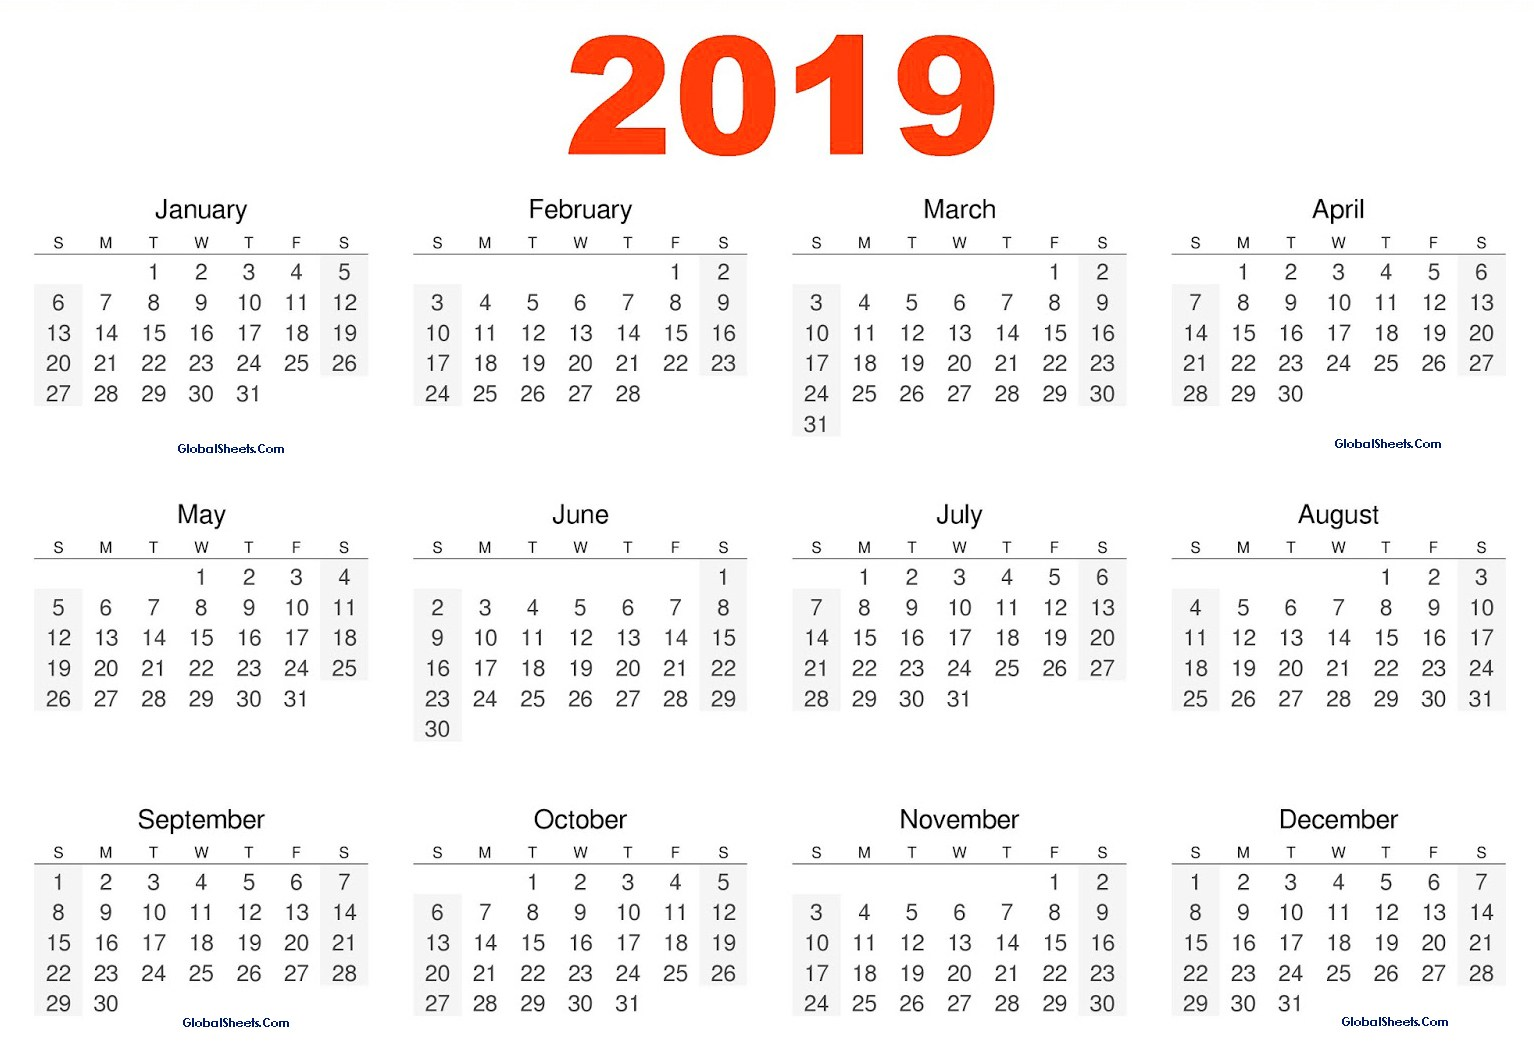 2019 Yearly Calendar Excel Printable. 2019 Yearly Calendar Free, 2019 Yearly Calendar Pritnable, 2019 Yearly Calendar in One Page